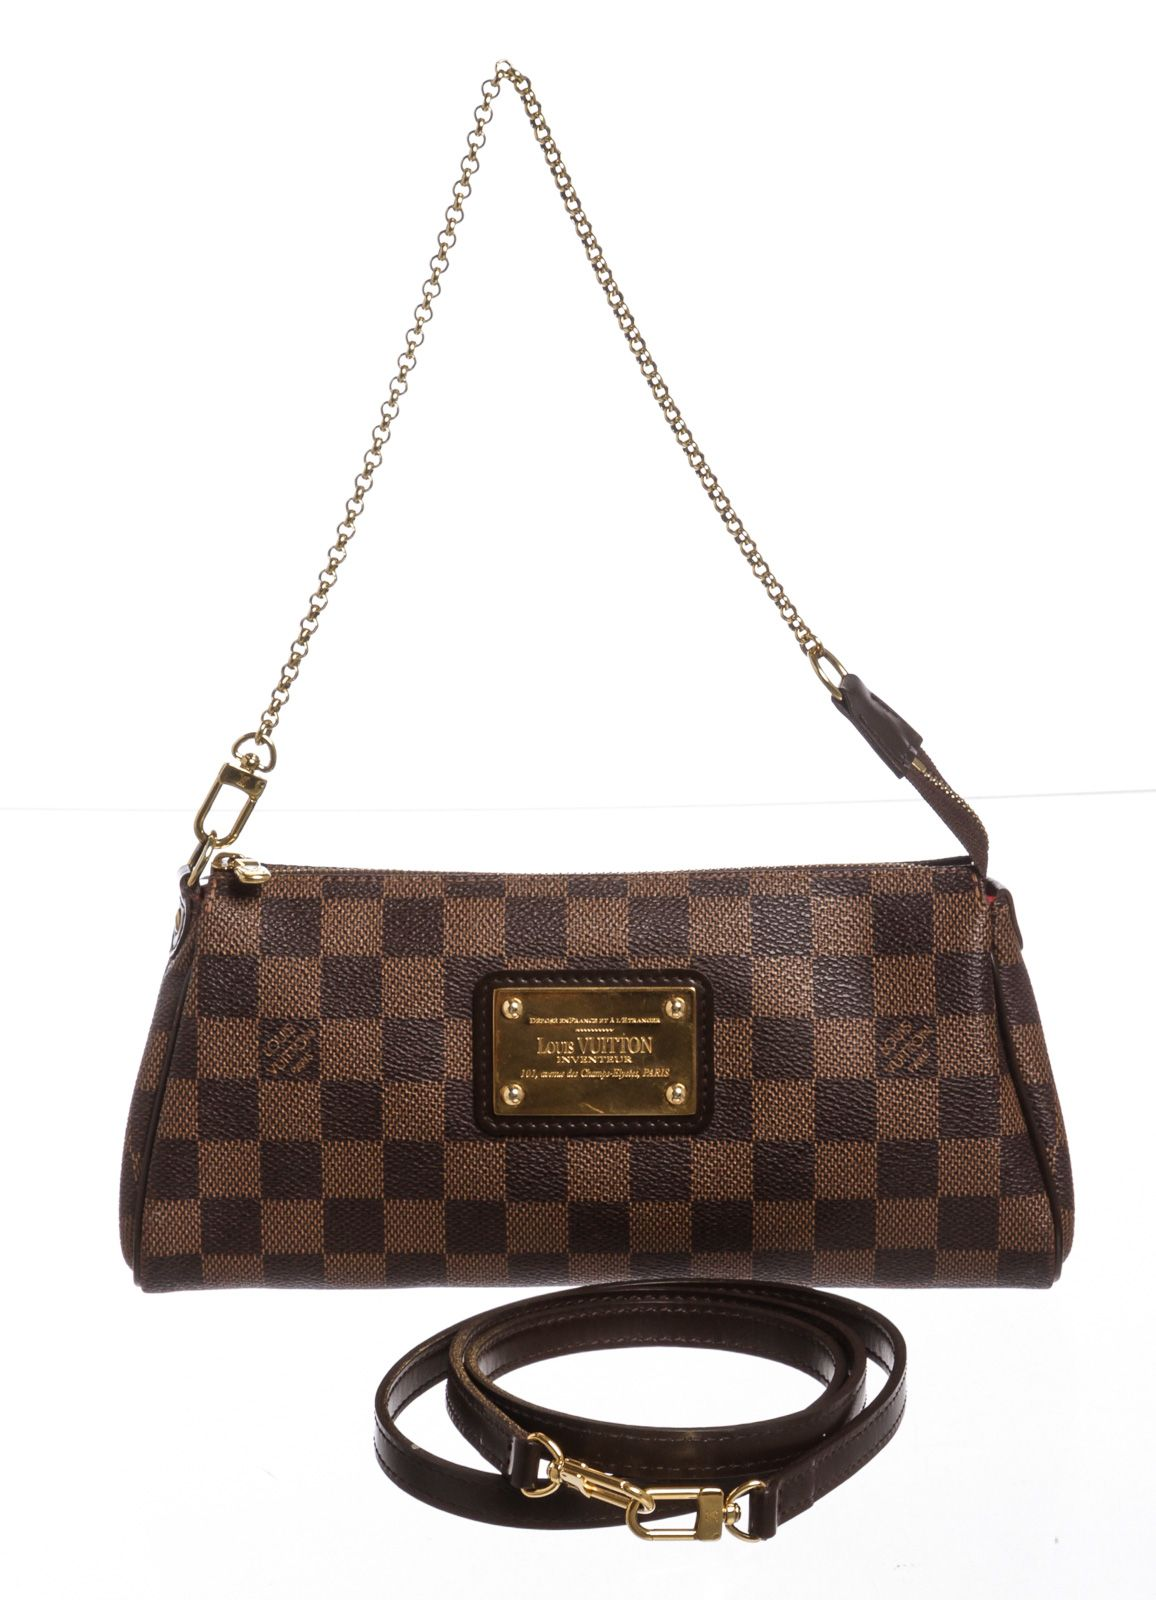 972cfebf6 Louis Vuitton Damier Ebene Canvas Leather Eva Pochette Clutch Bag ...